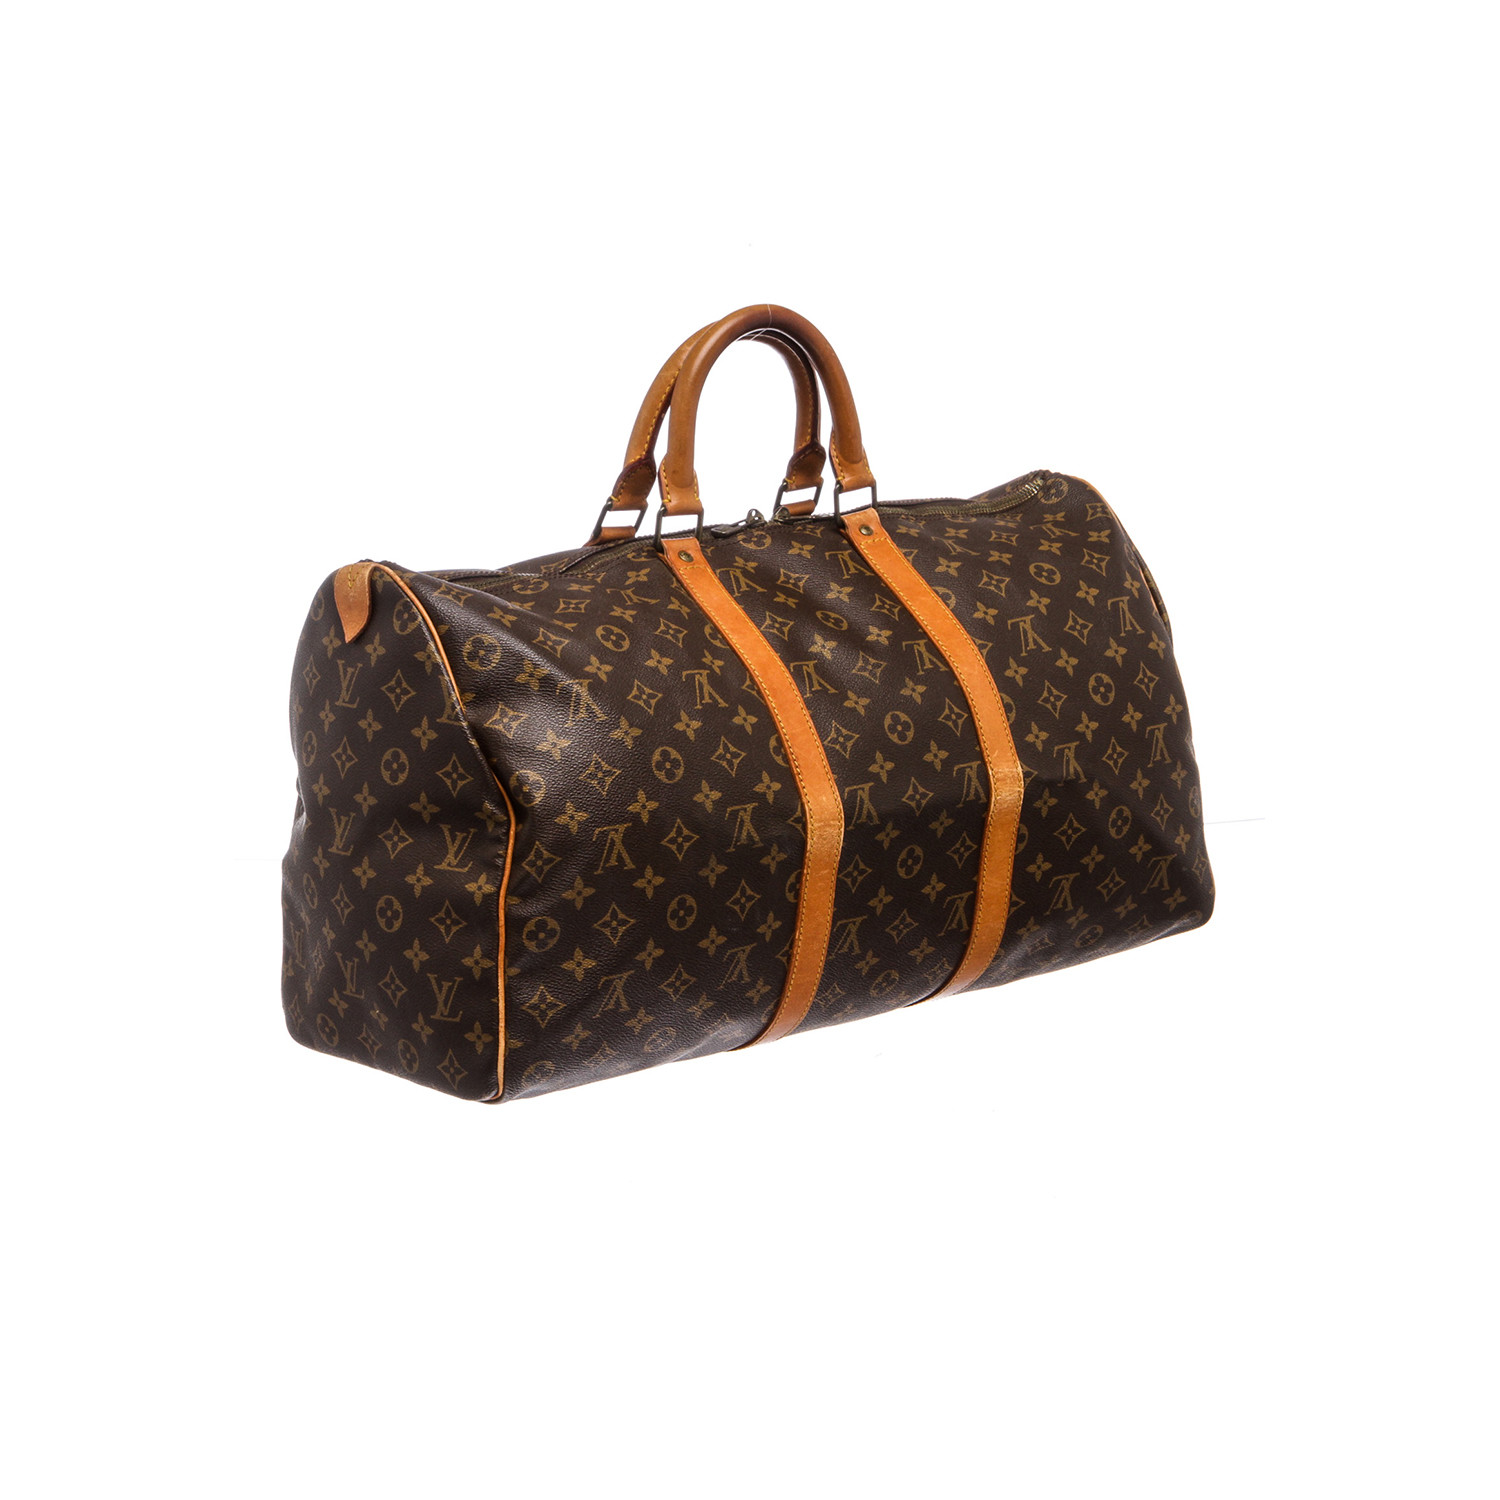 keepall 50 duffle sa851 pre owned louis vuitton touch of modern. Black Bedroom Furniture Sets. Home Design Ideas